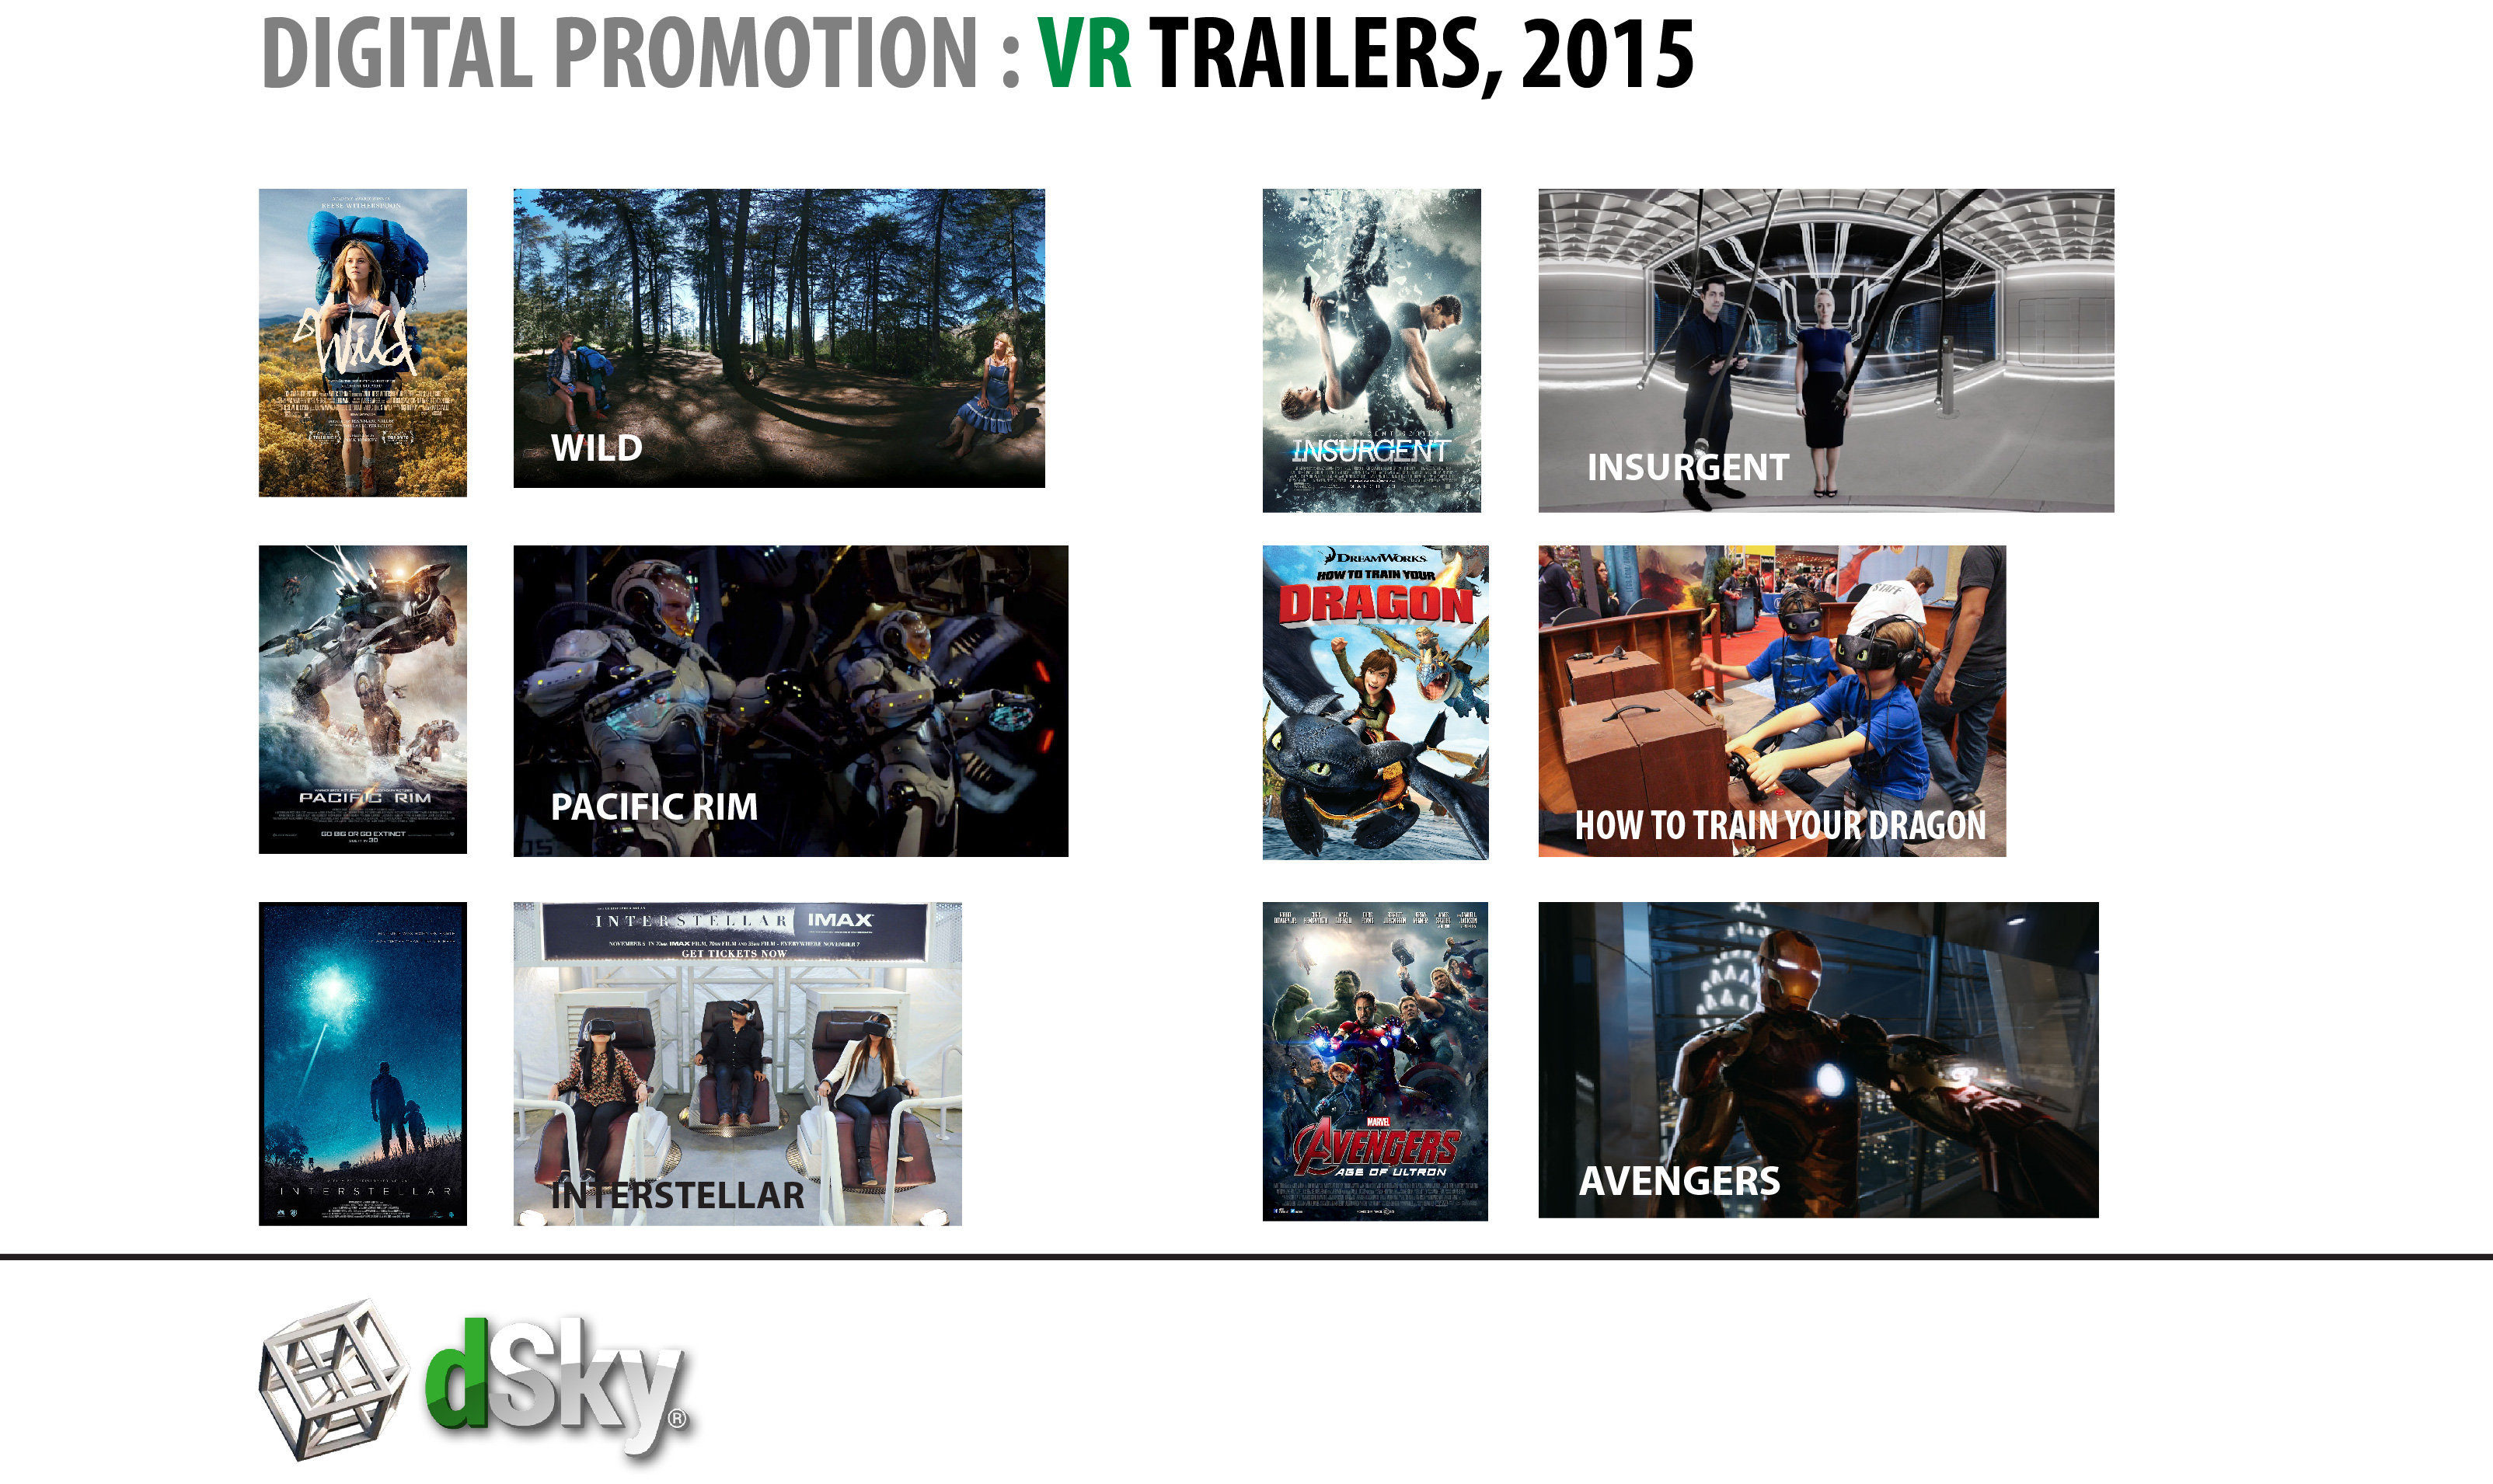 VR-movie-trailers-2015